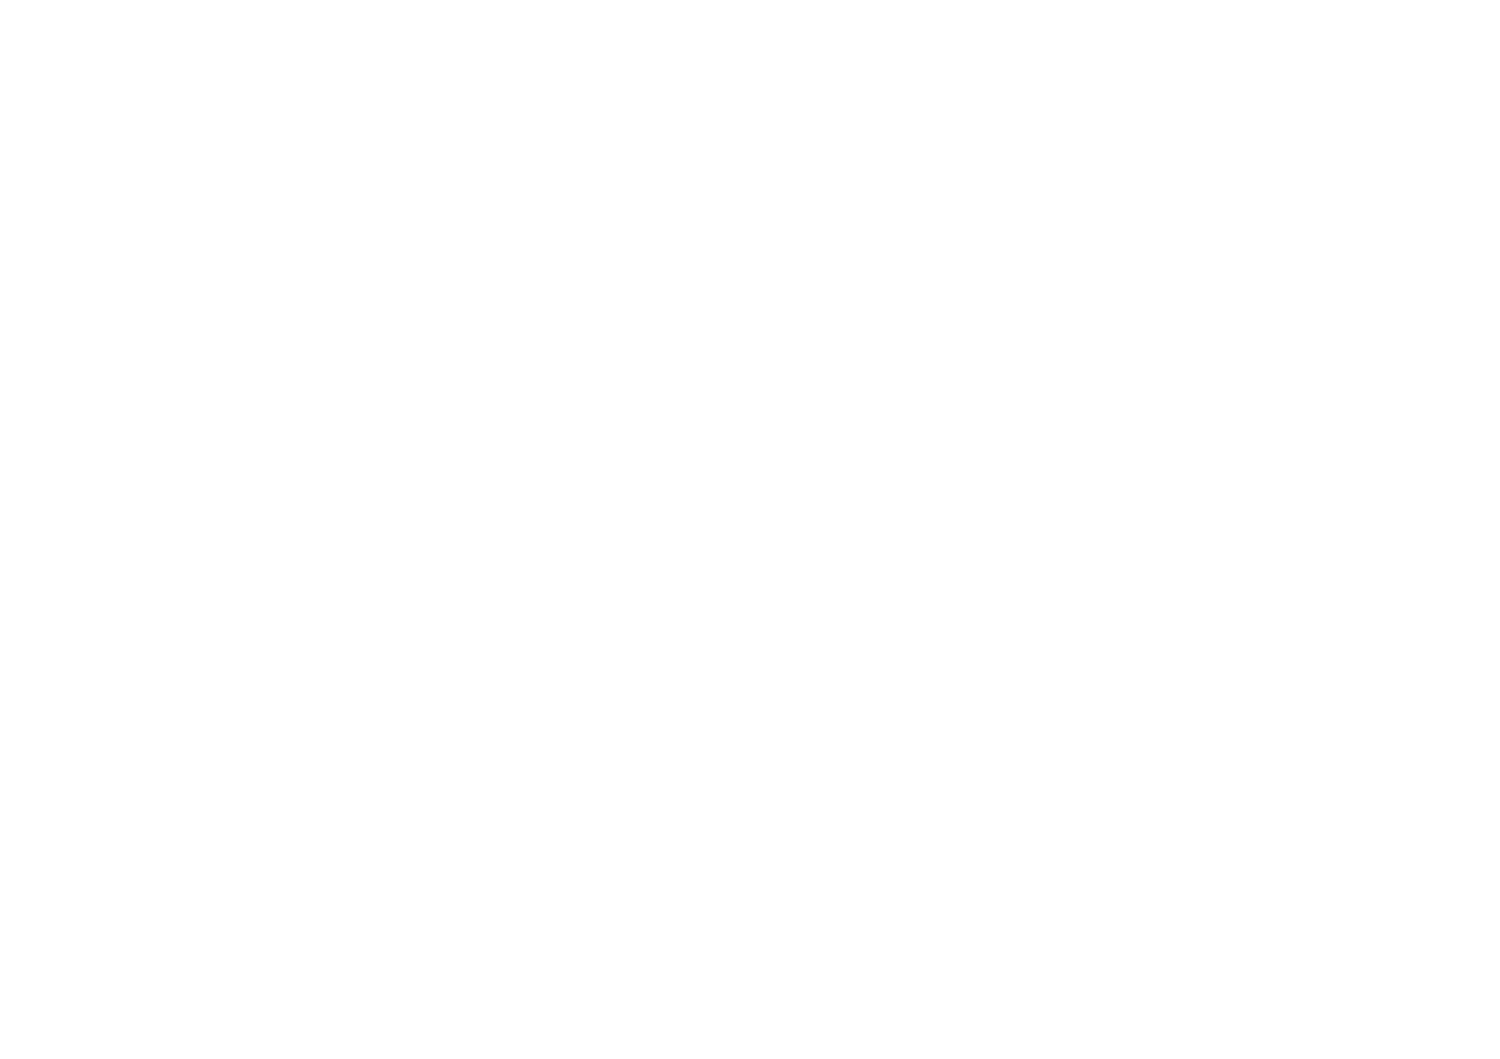 Tampa Bay Virtual